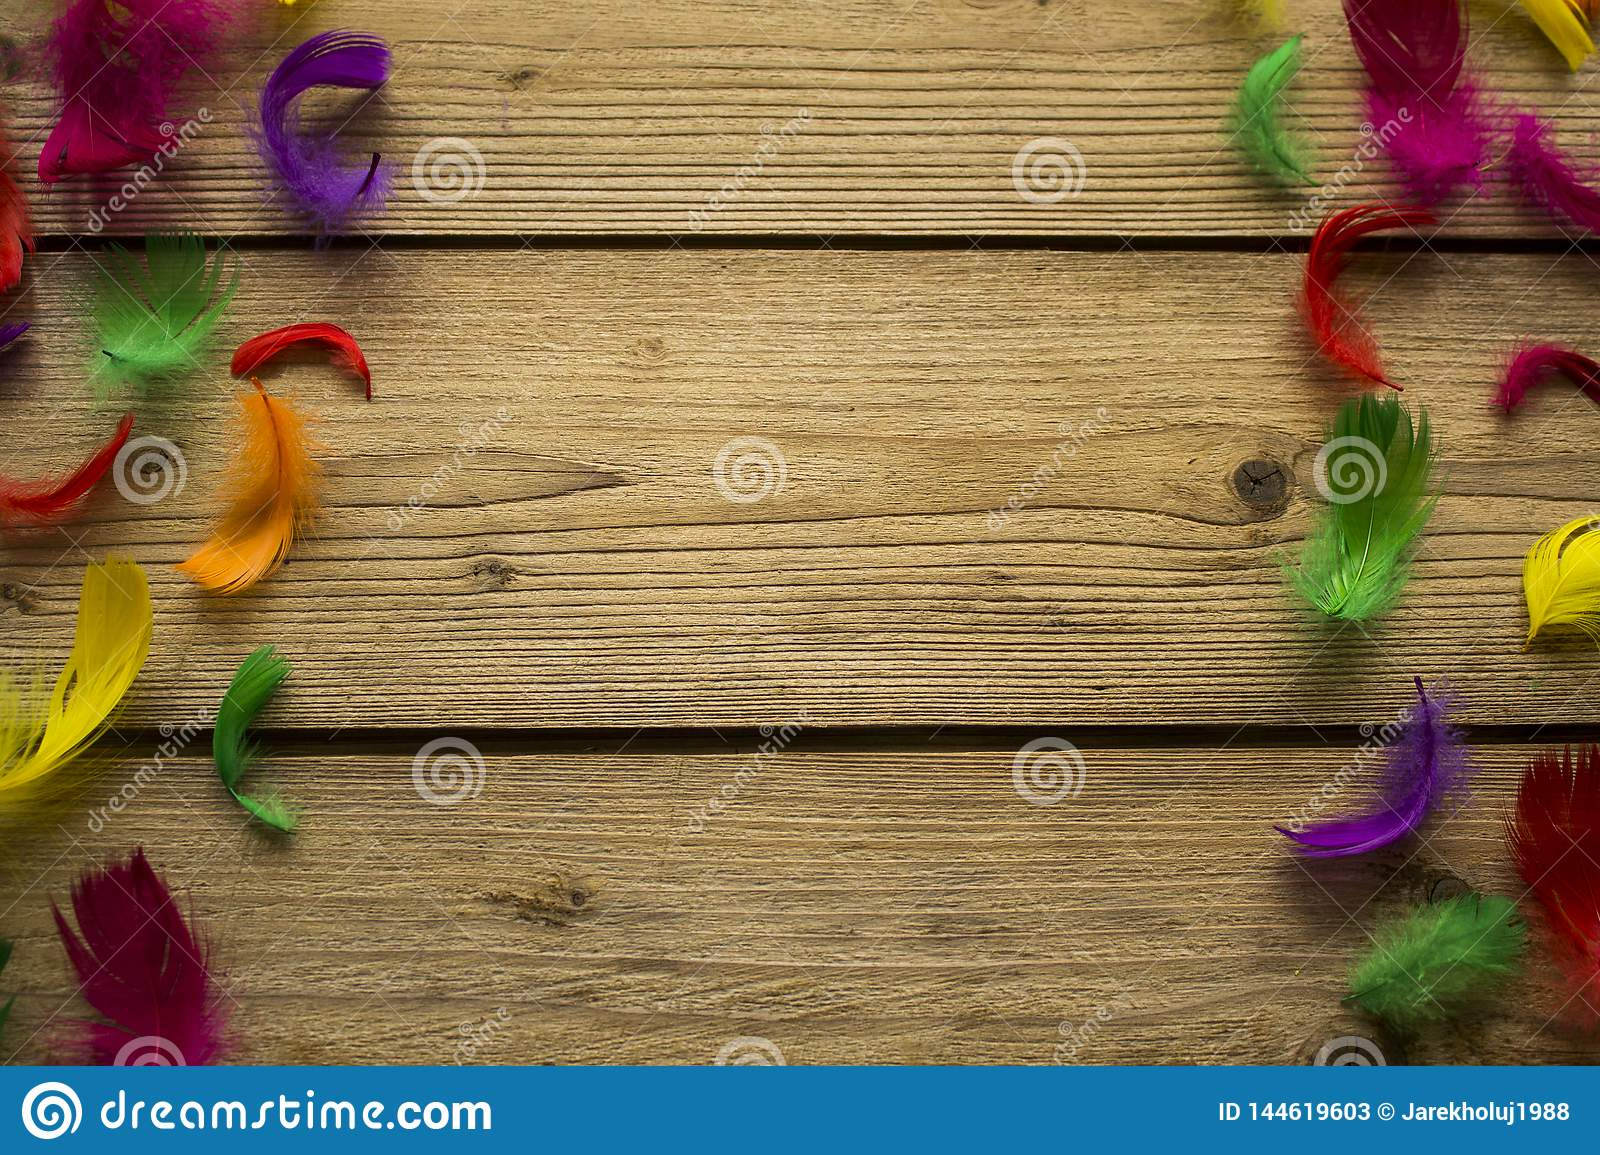 Colorful feathers on wooden table